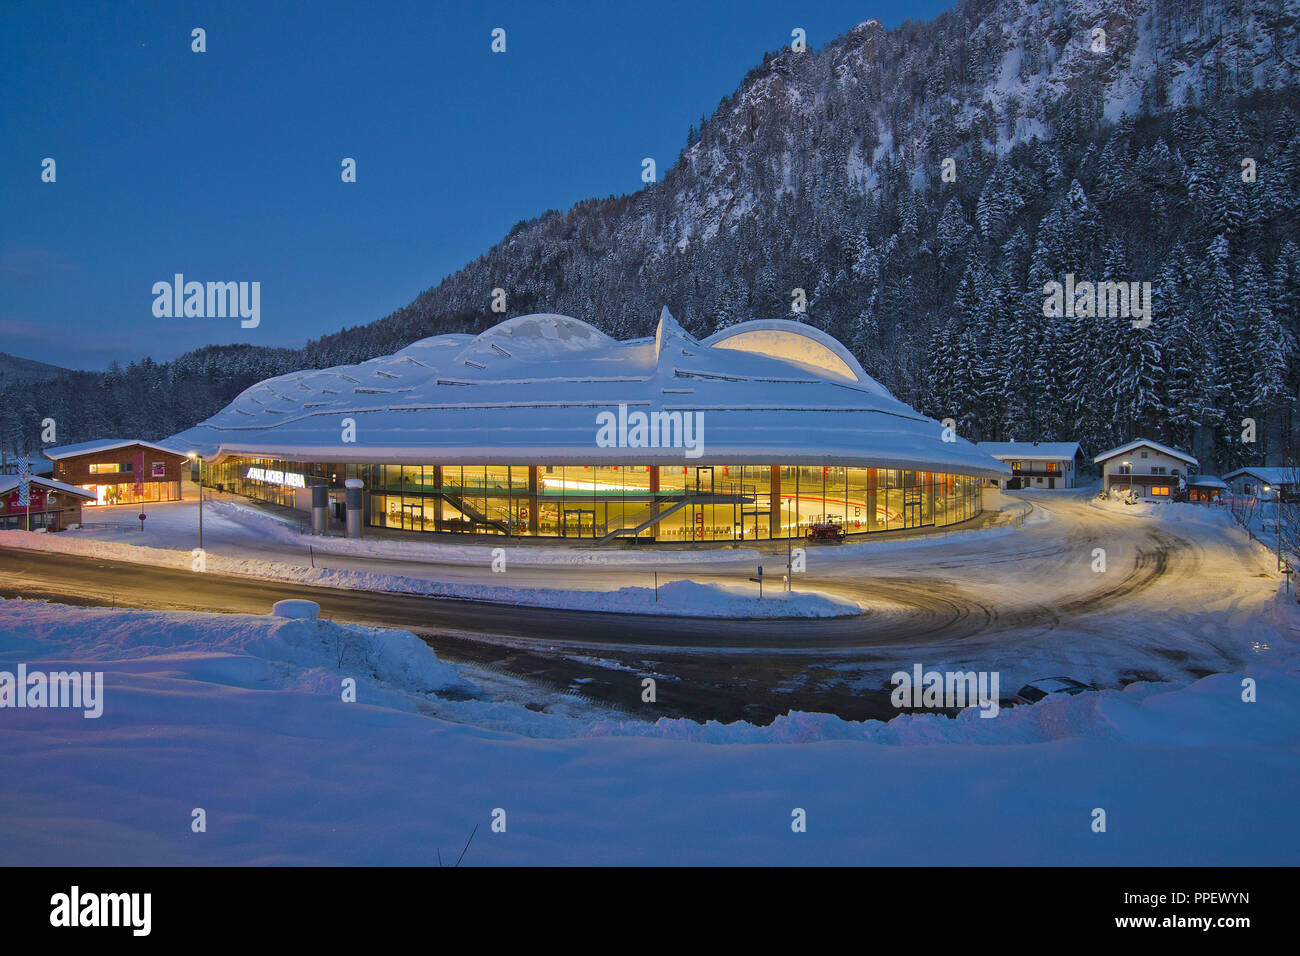 Ice stadium in Inzell at blue hour in the snowy winter - Chiemgau. - Stock Image